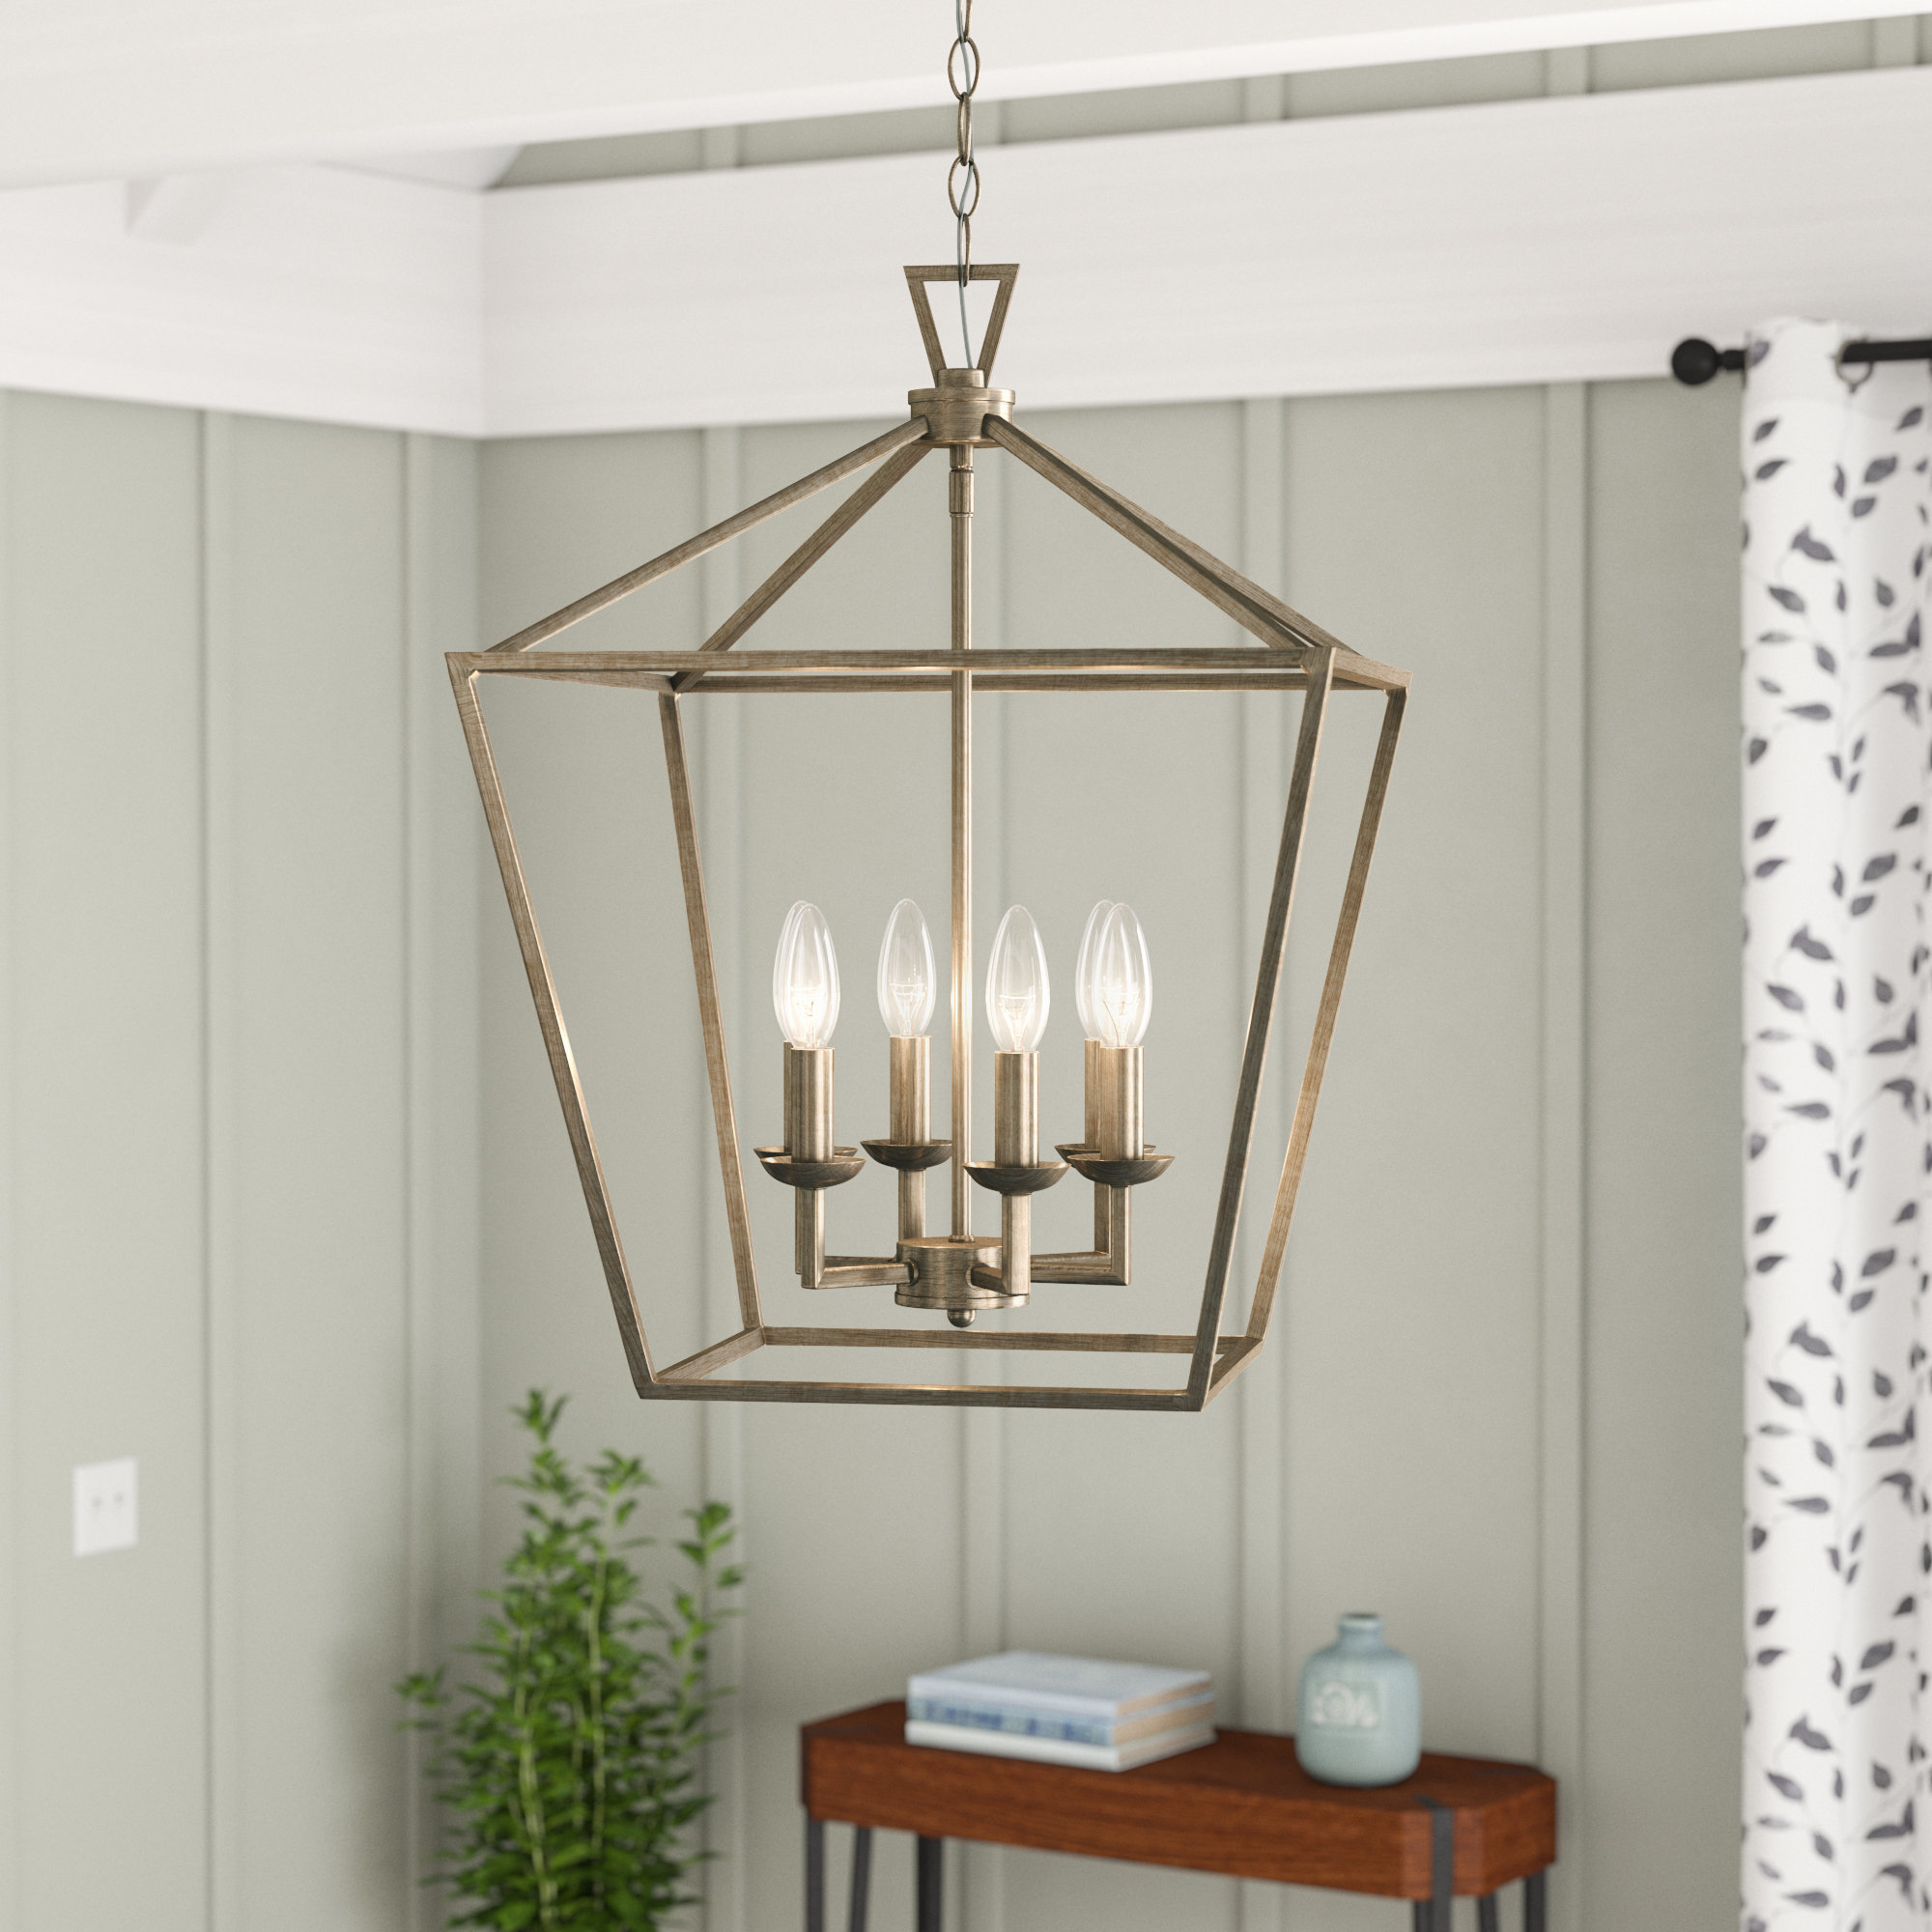 Best And Newest Carmen 6 Light Lantern Geometric Pendants Within Carmen 6 Light Lantern Geometric Pendant (View 1 of 20)